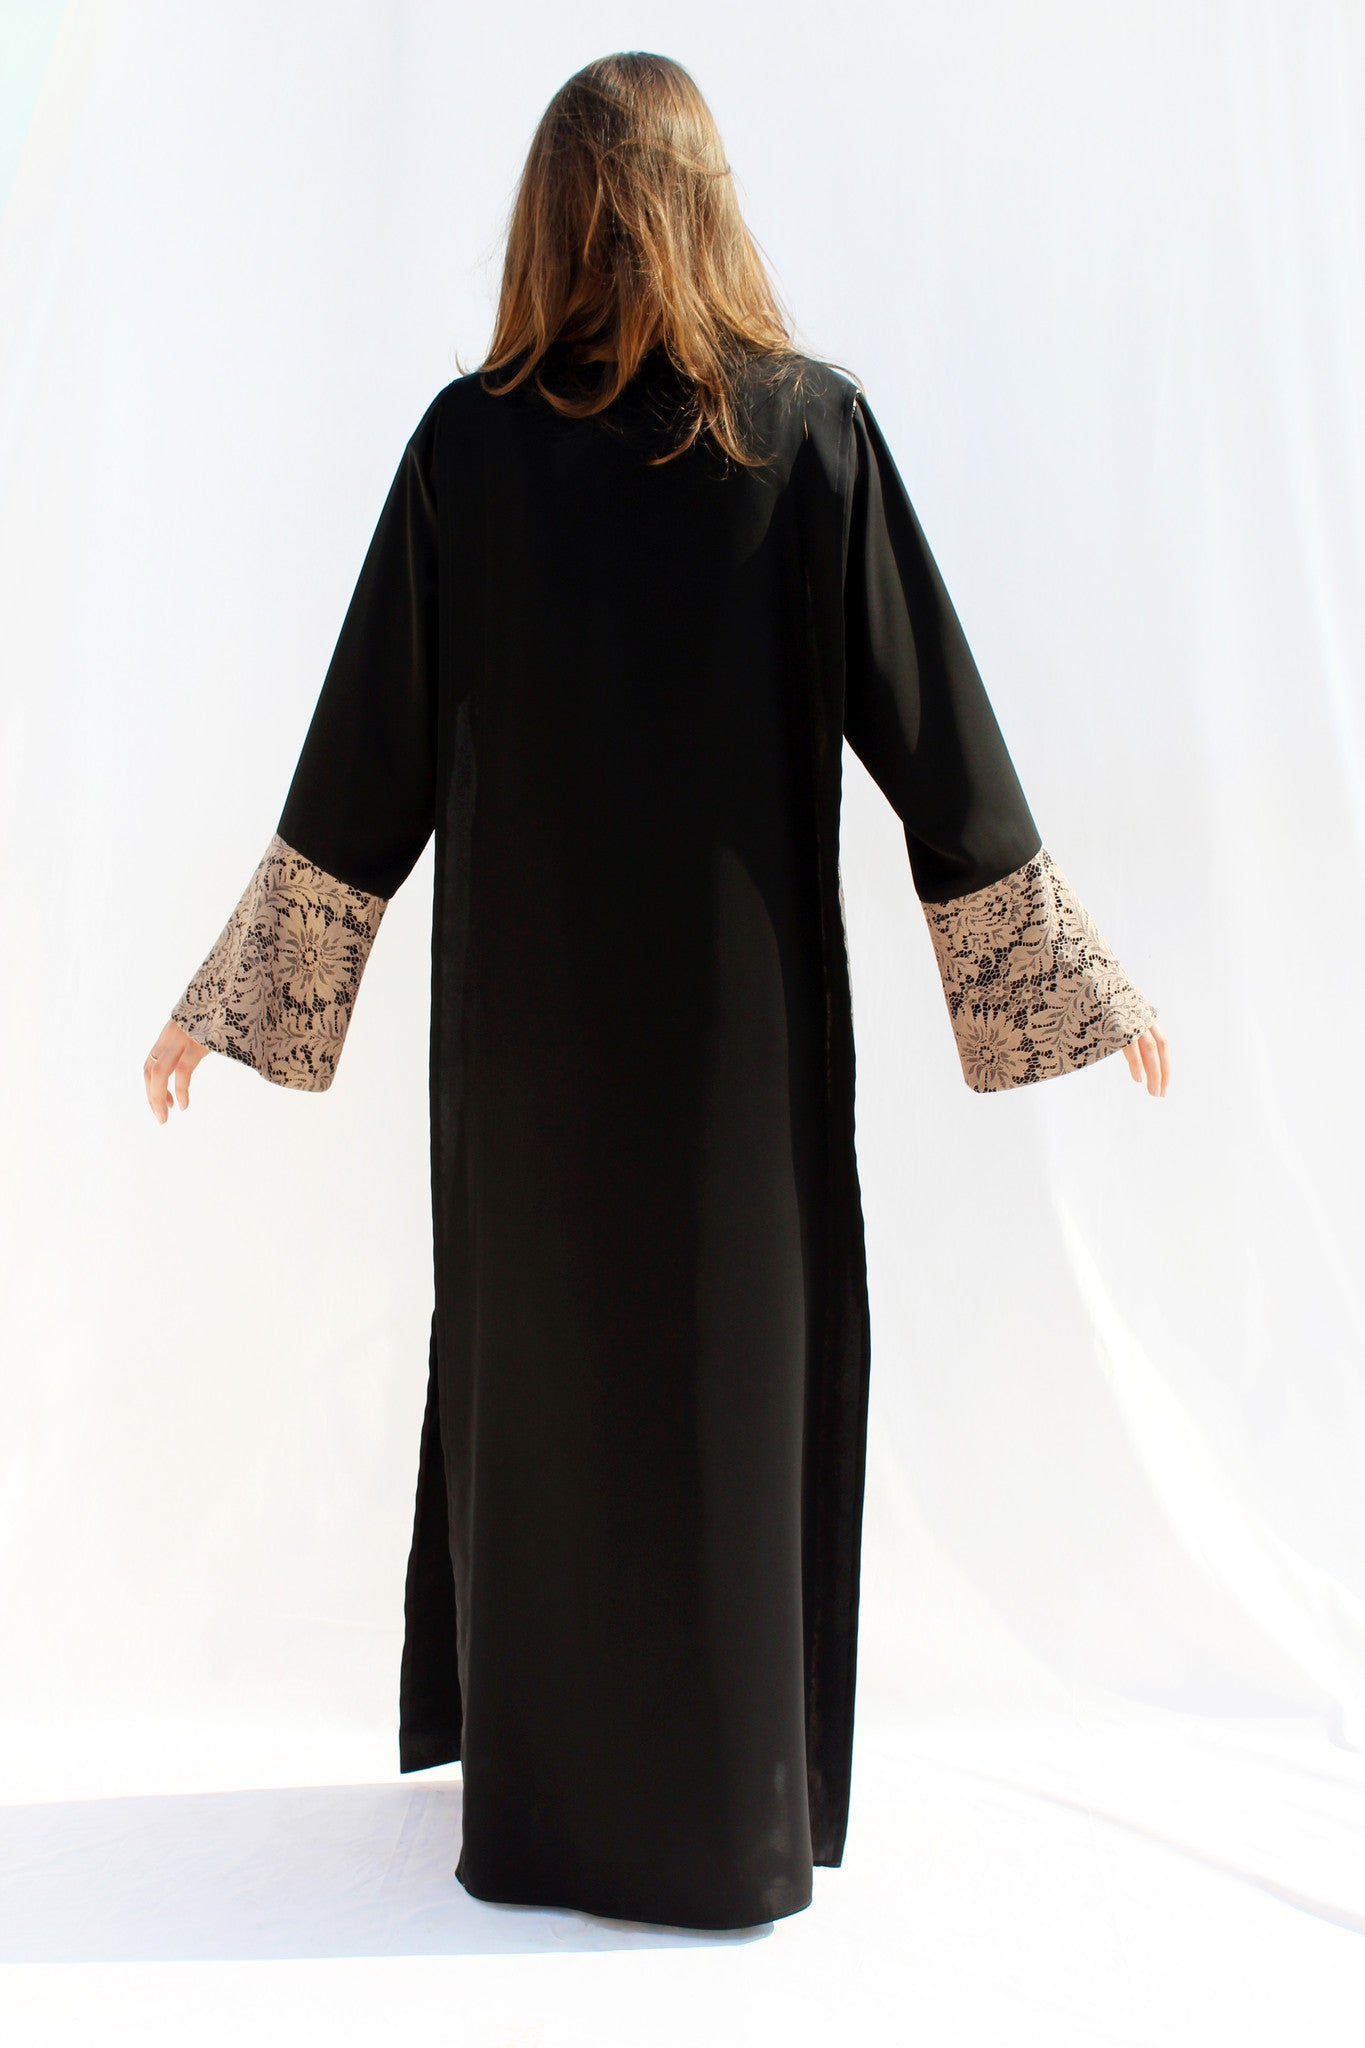 SORAYA - ACC2103A - Arabesque Classic cut abaya shape with lace embellishment on pagode sleeve end + Full front lace partially layered with black fabric on top + Black chiffon fabric under the lace + Back in plain black.